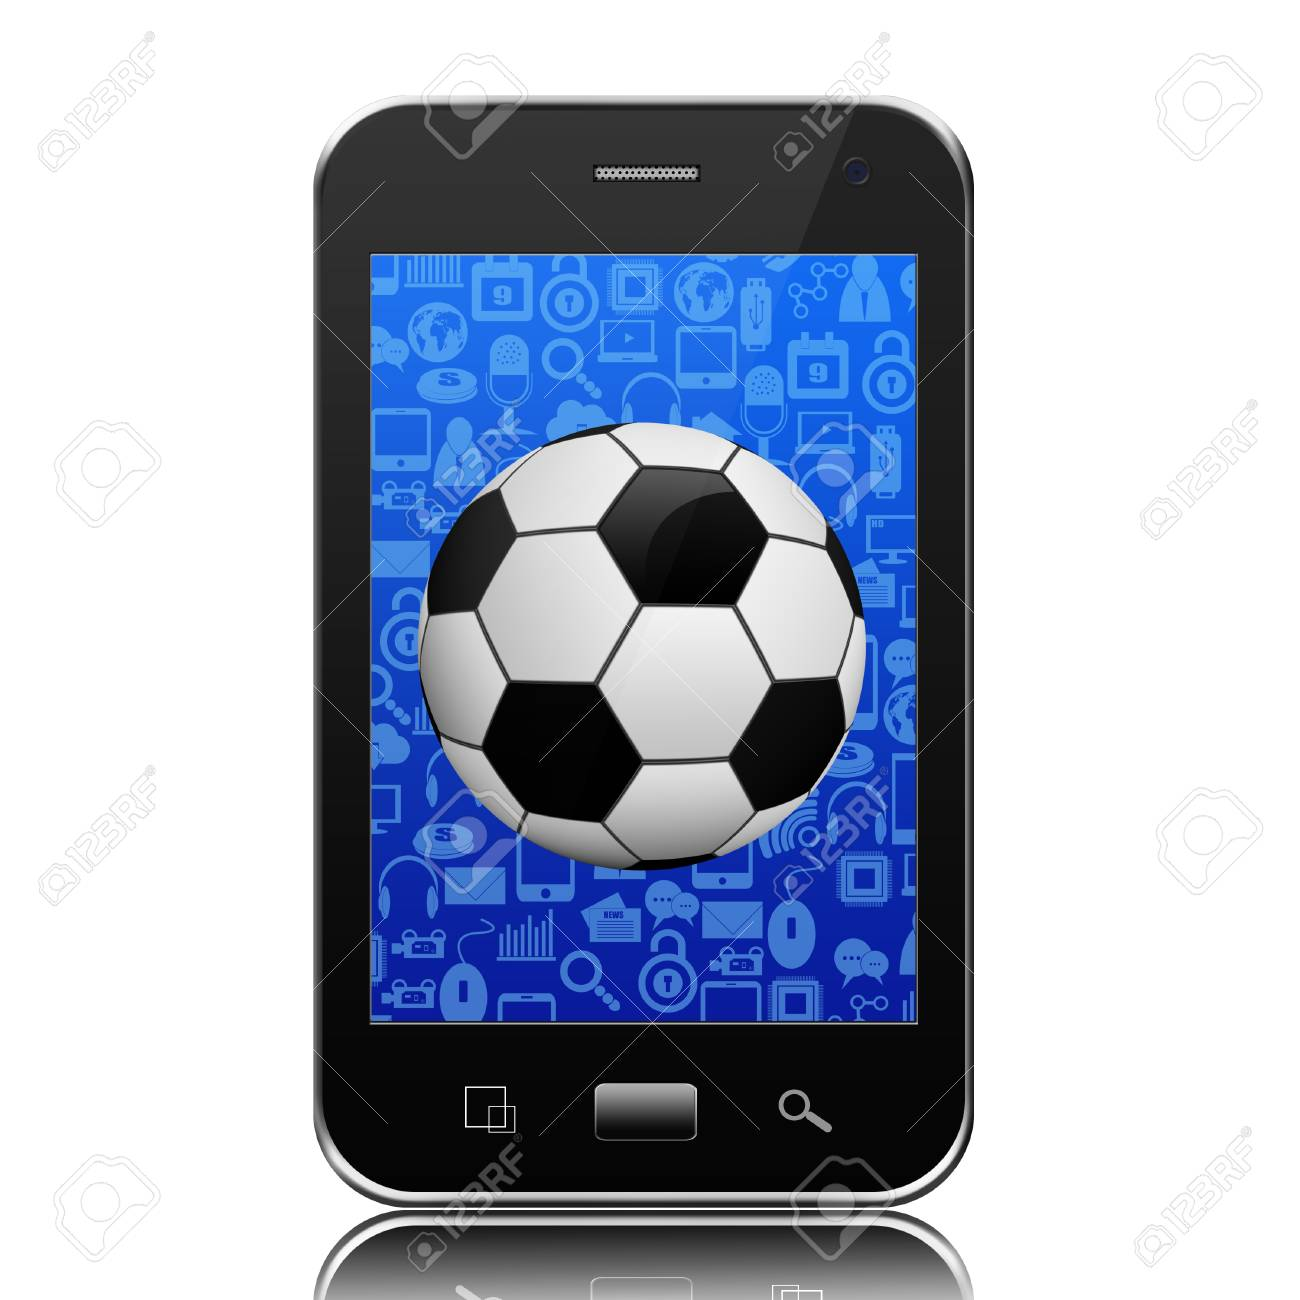 Soccer ball on smartphone,cell phone illustration Stock Illustration - 24766916